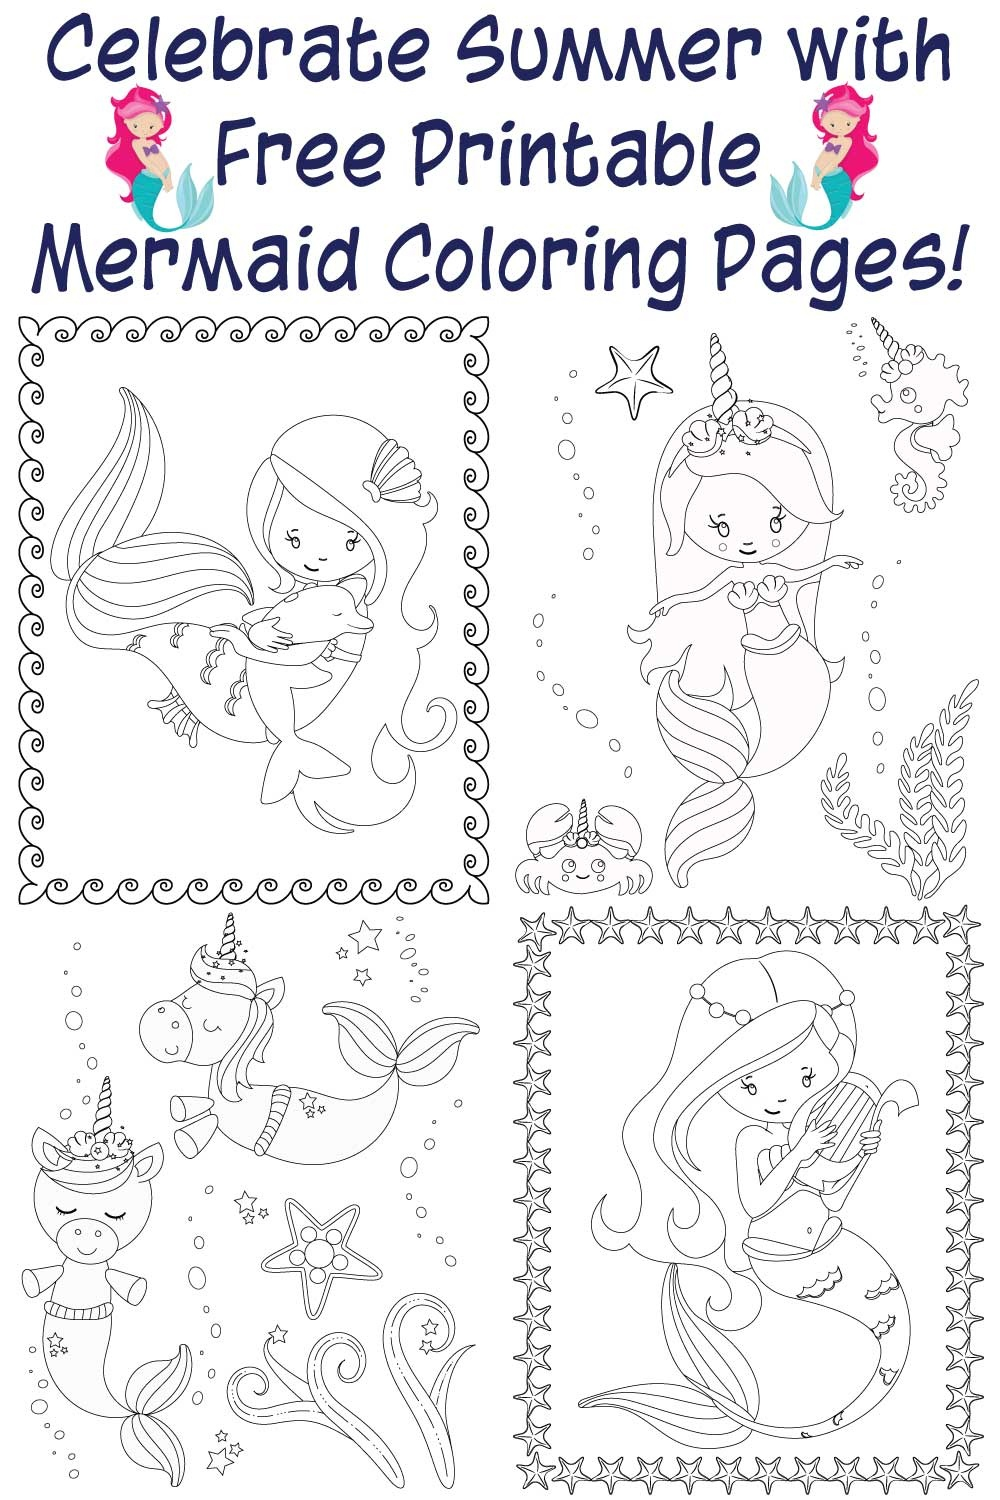 The Best Free Printable Mermaid Coloring Pages - The Artisan Life - Free Printable Pictures